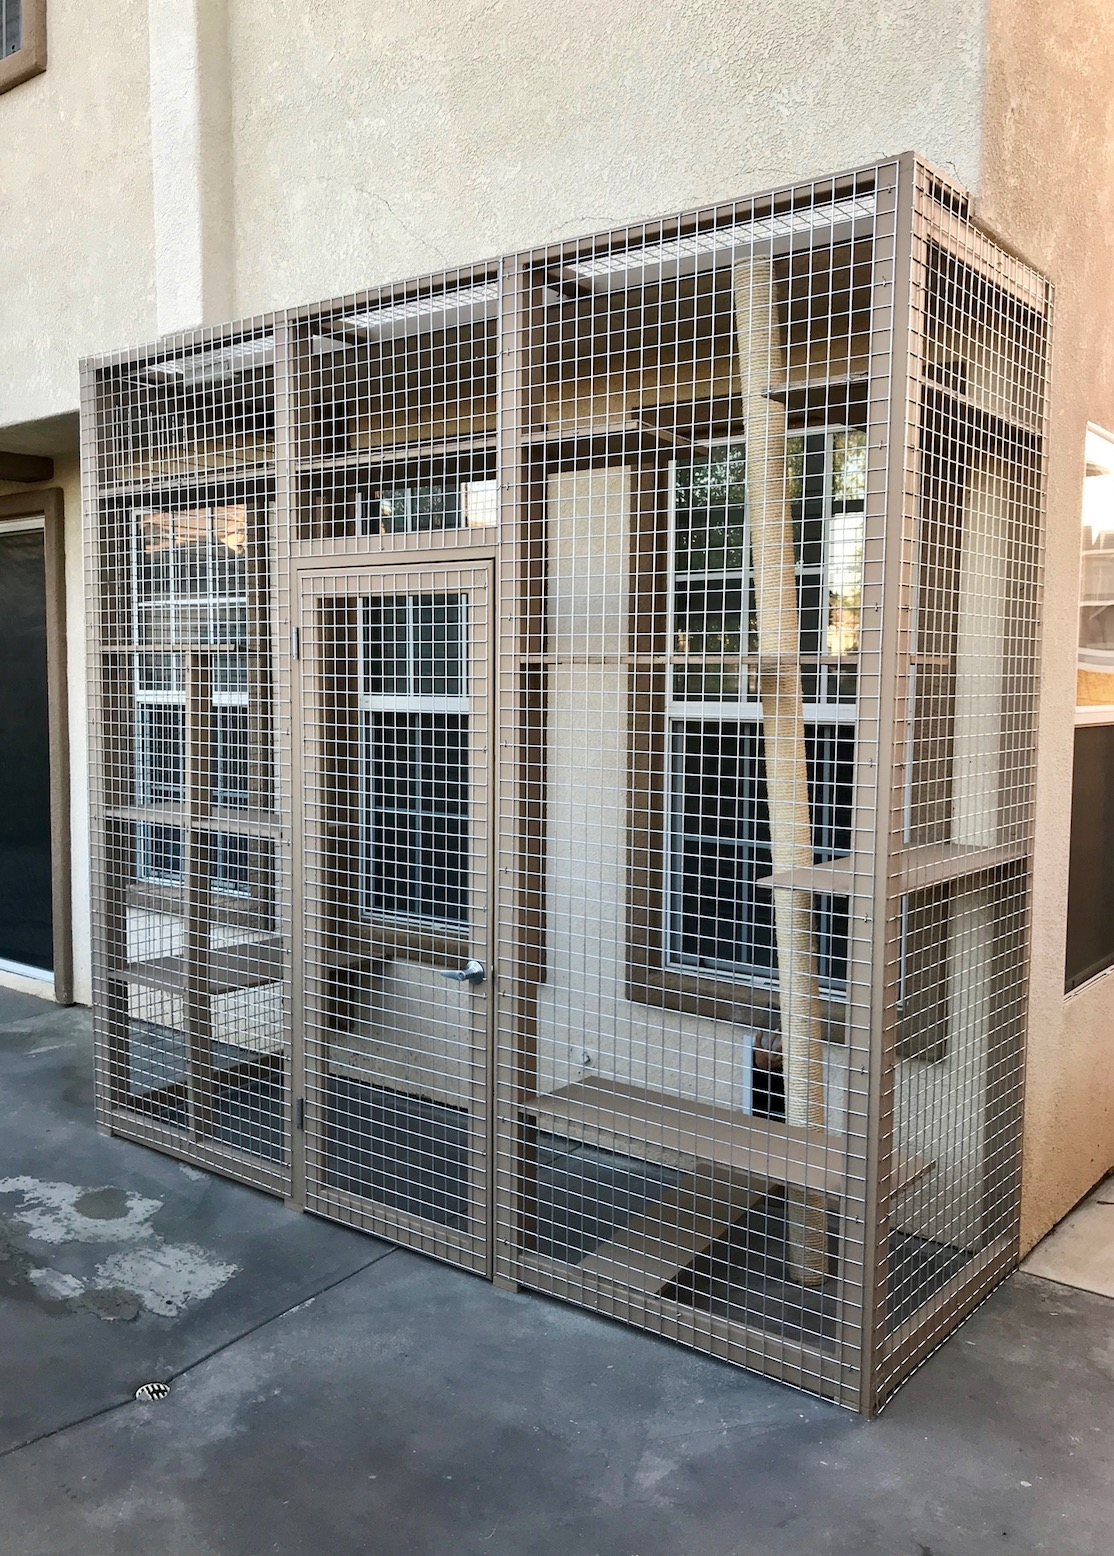 Brea Orange County Catio